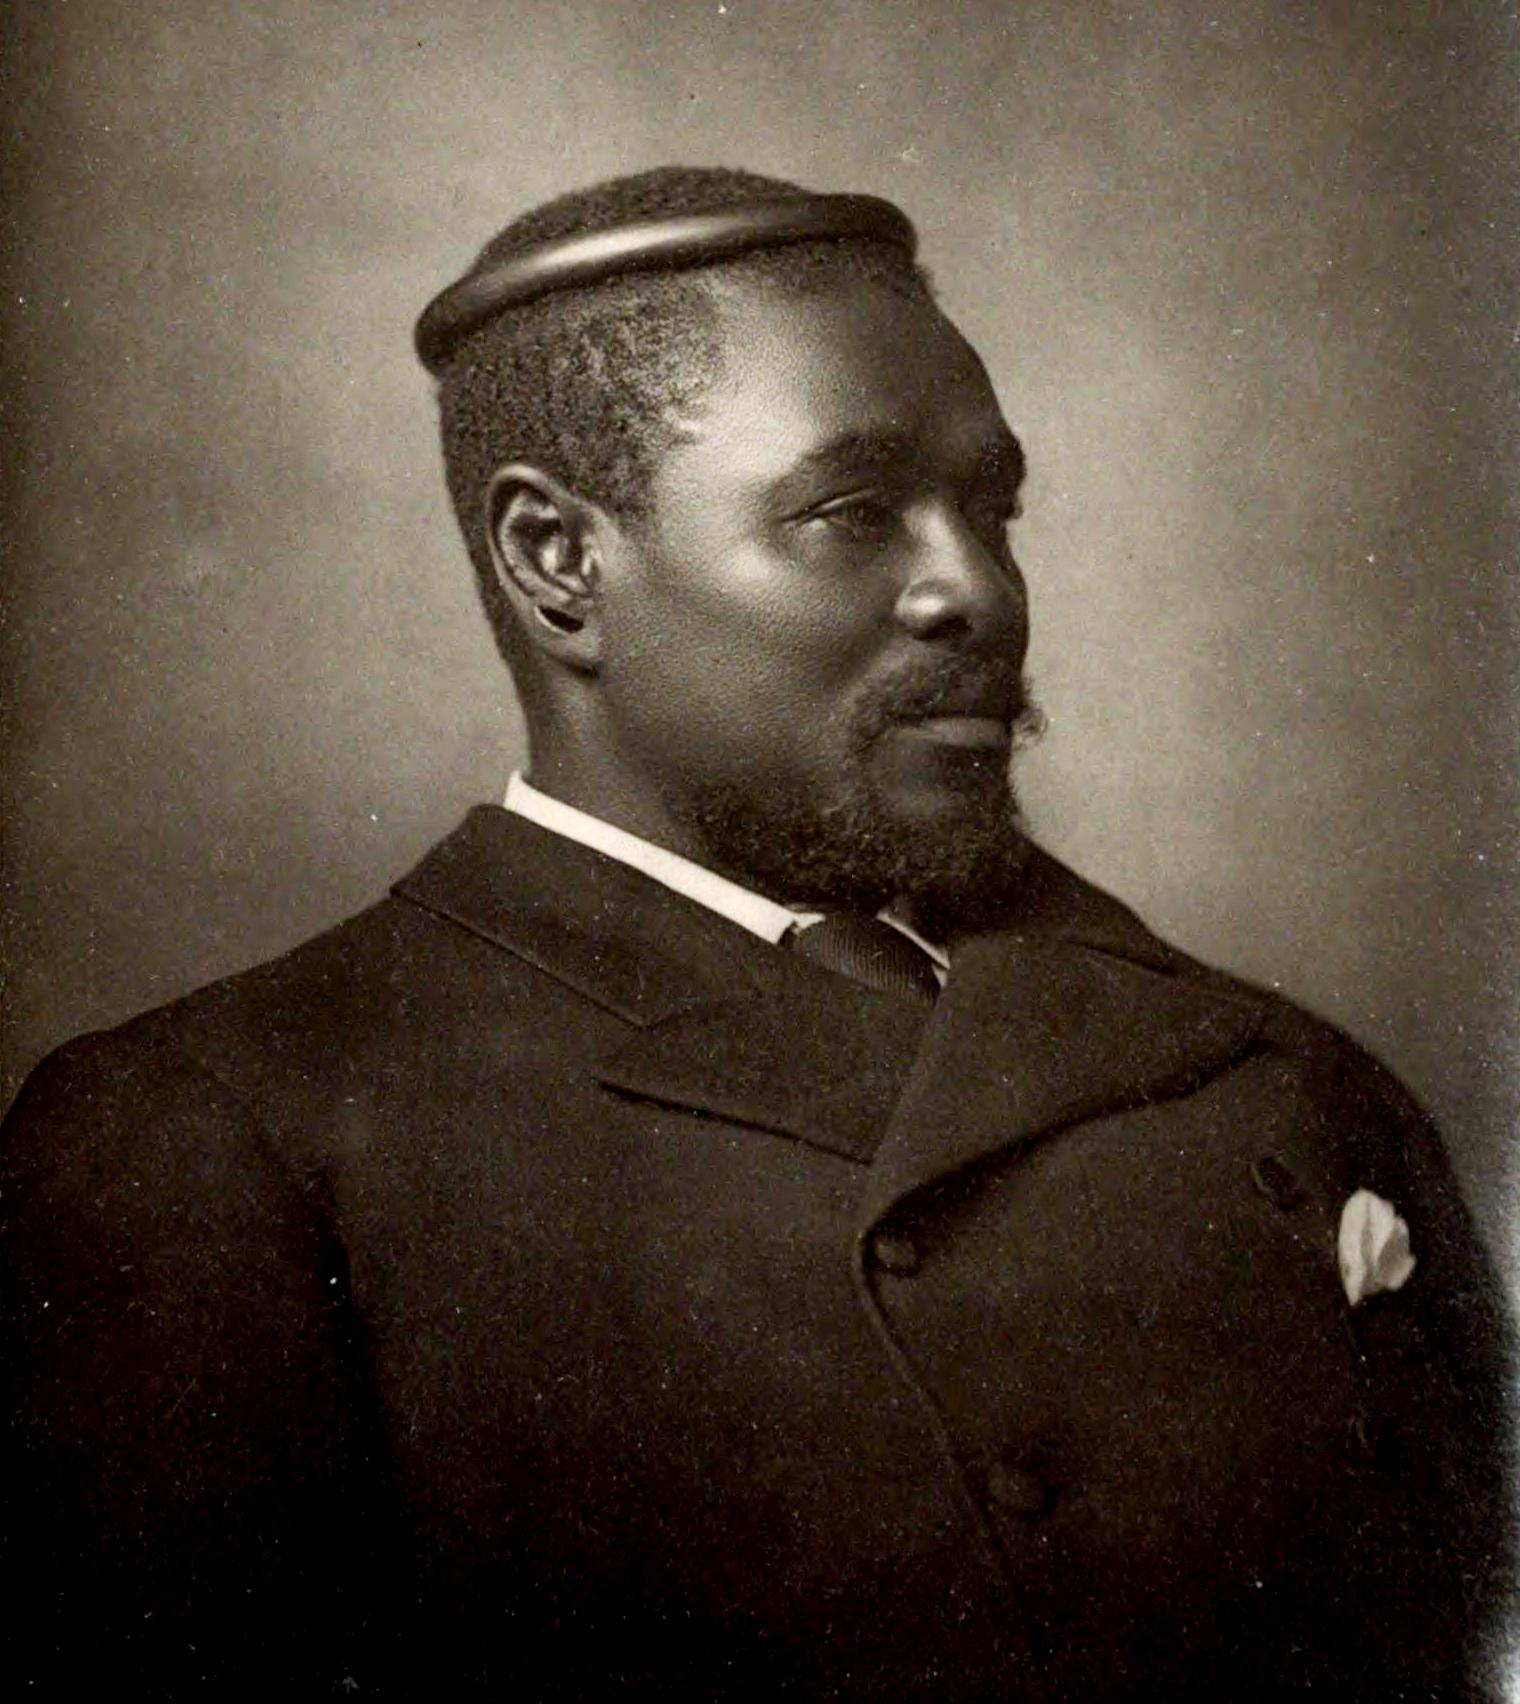 Cetshwayo kaMpande (1826 – 1884) King of the Zulus